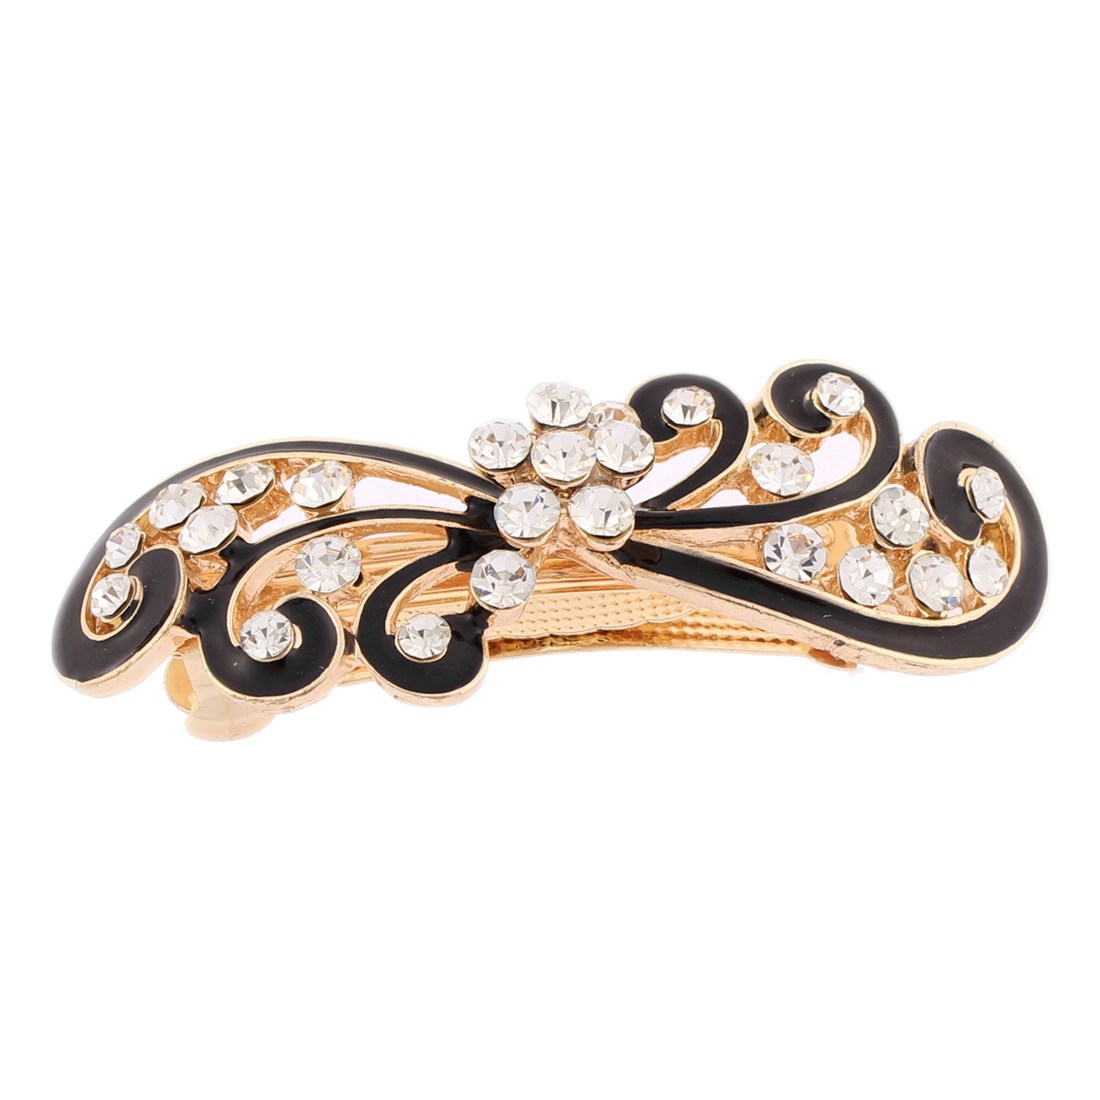 Women Plastic Rhinestones Inlaid Black Floral Accent French Barrette Style Metal Hair Clip Hairpin Decor Gold Tone